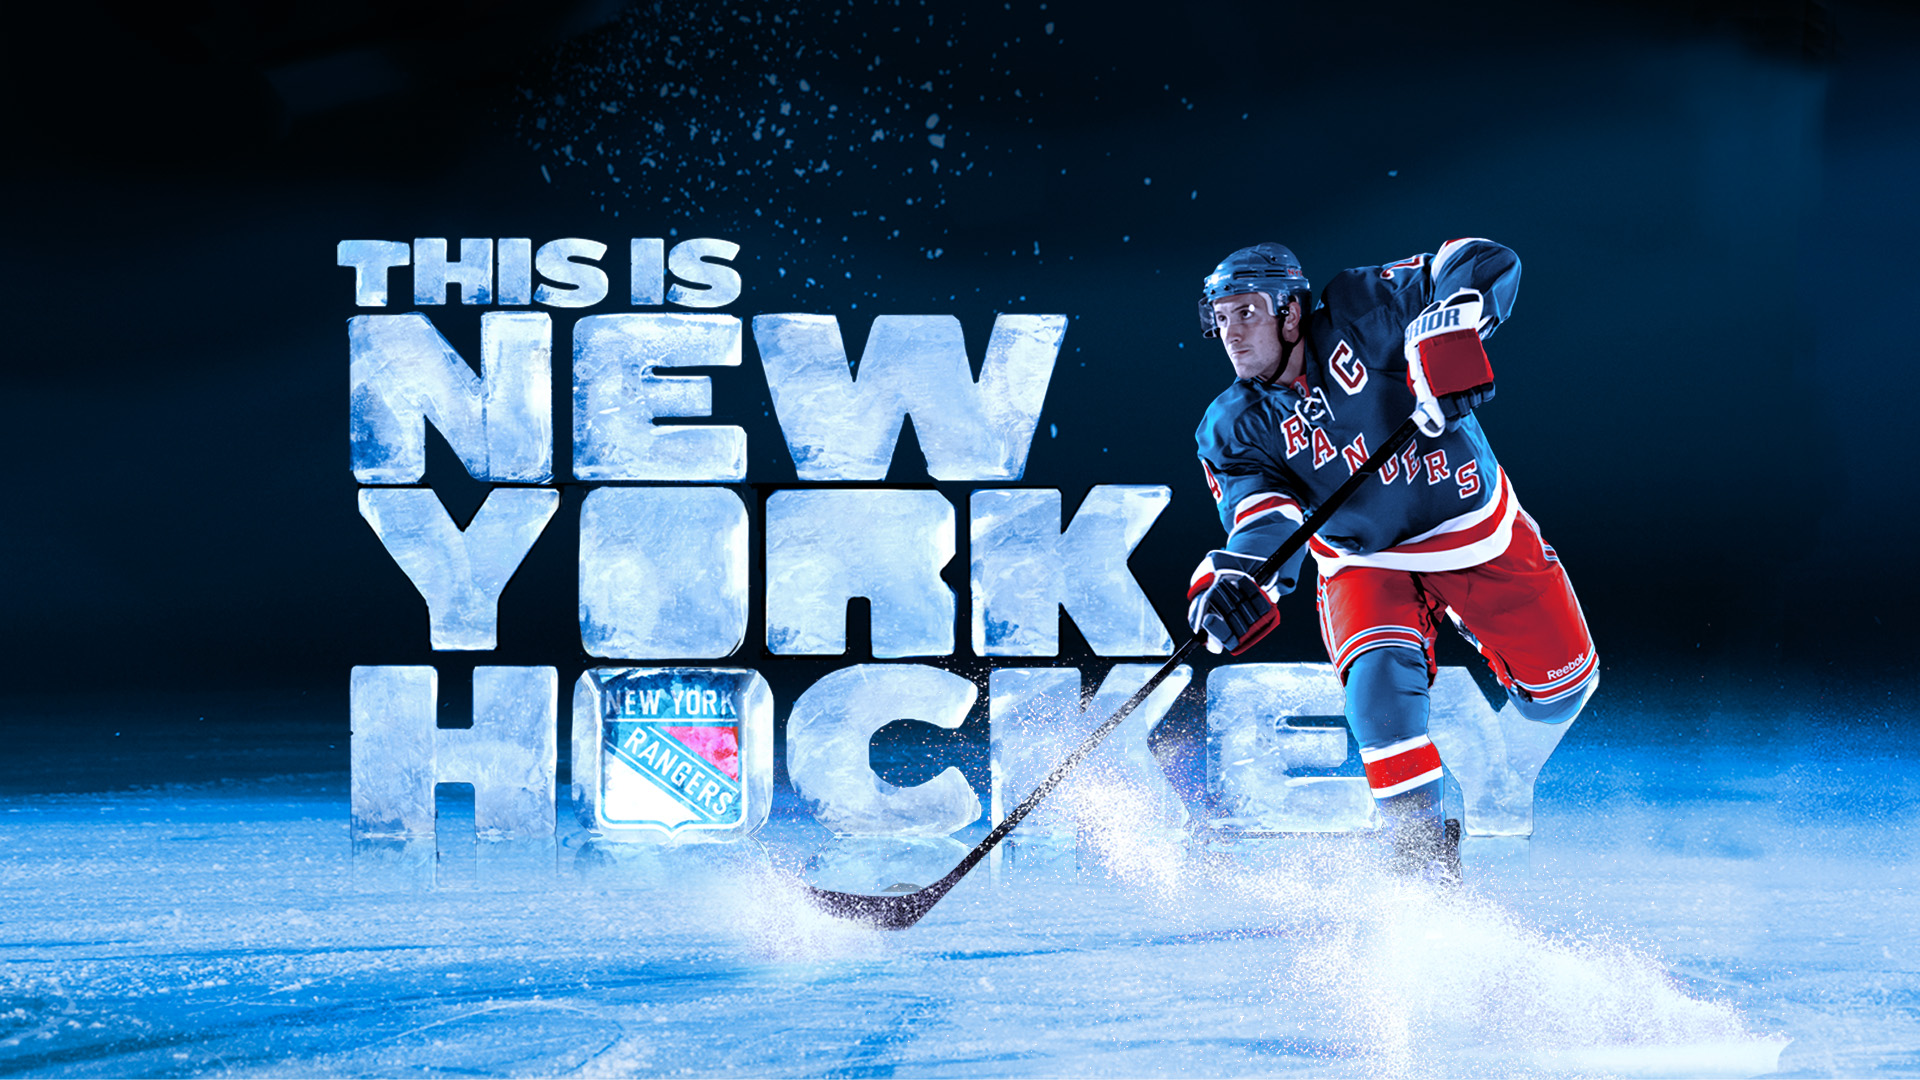 Ew York Rangers Hockey Ice Hockey Wallpaper Hd Sports 4k Wallpapers Images Photos And Background